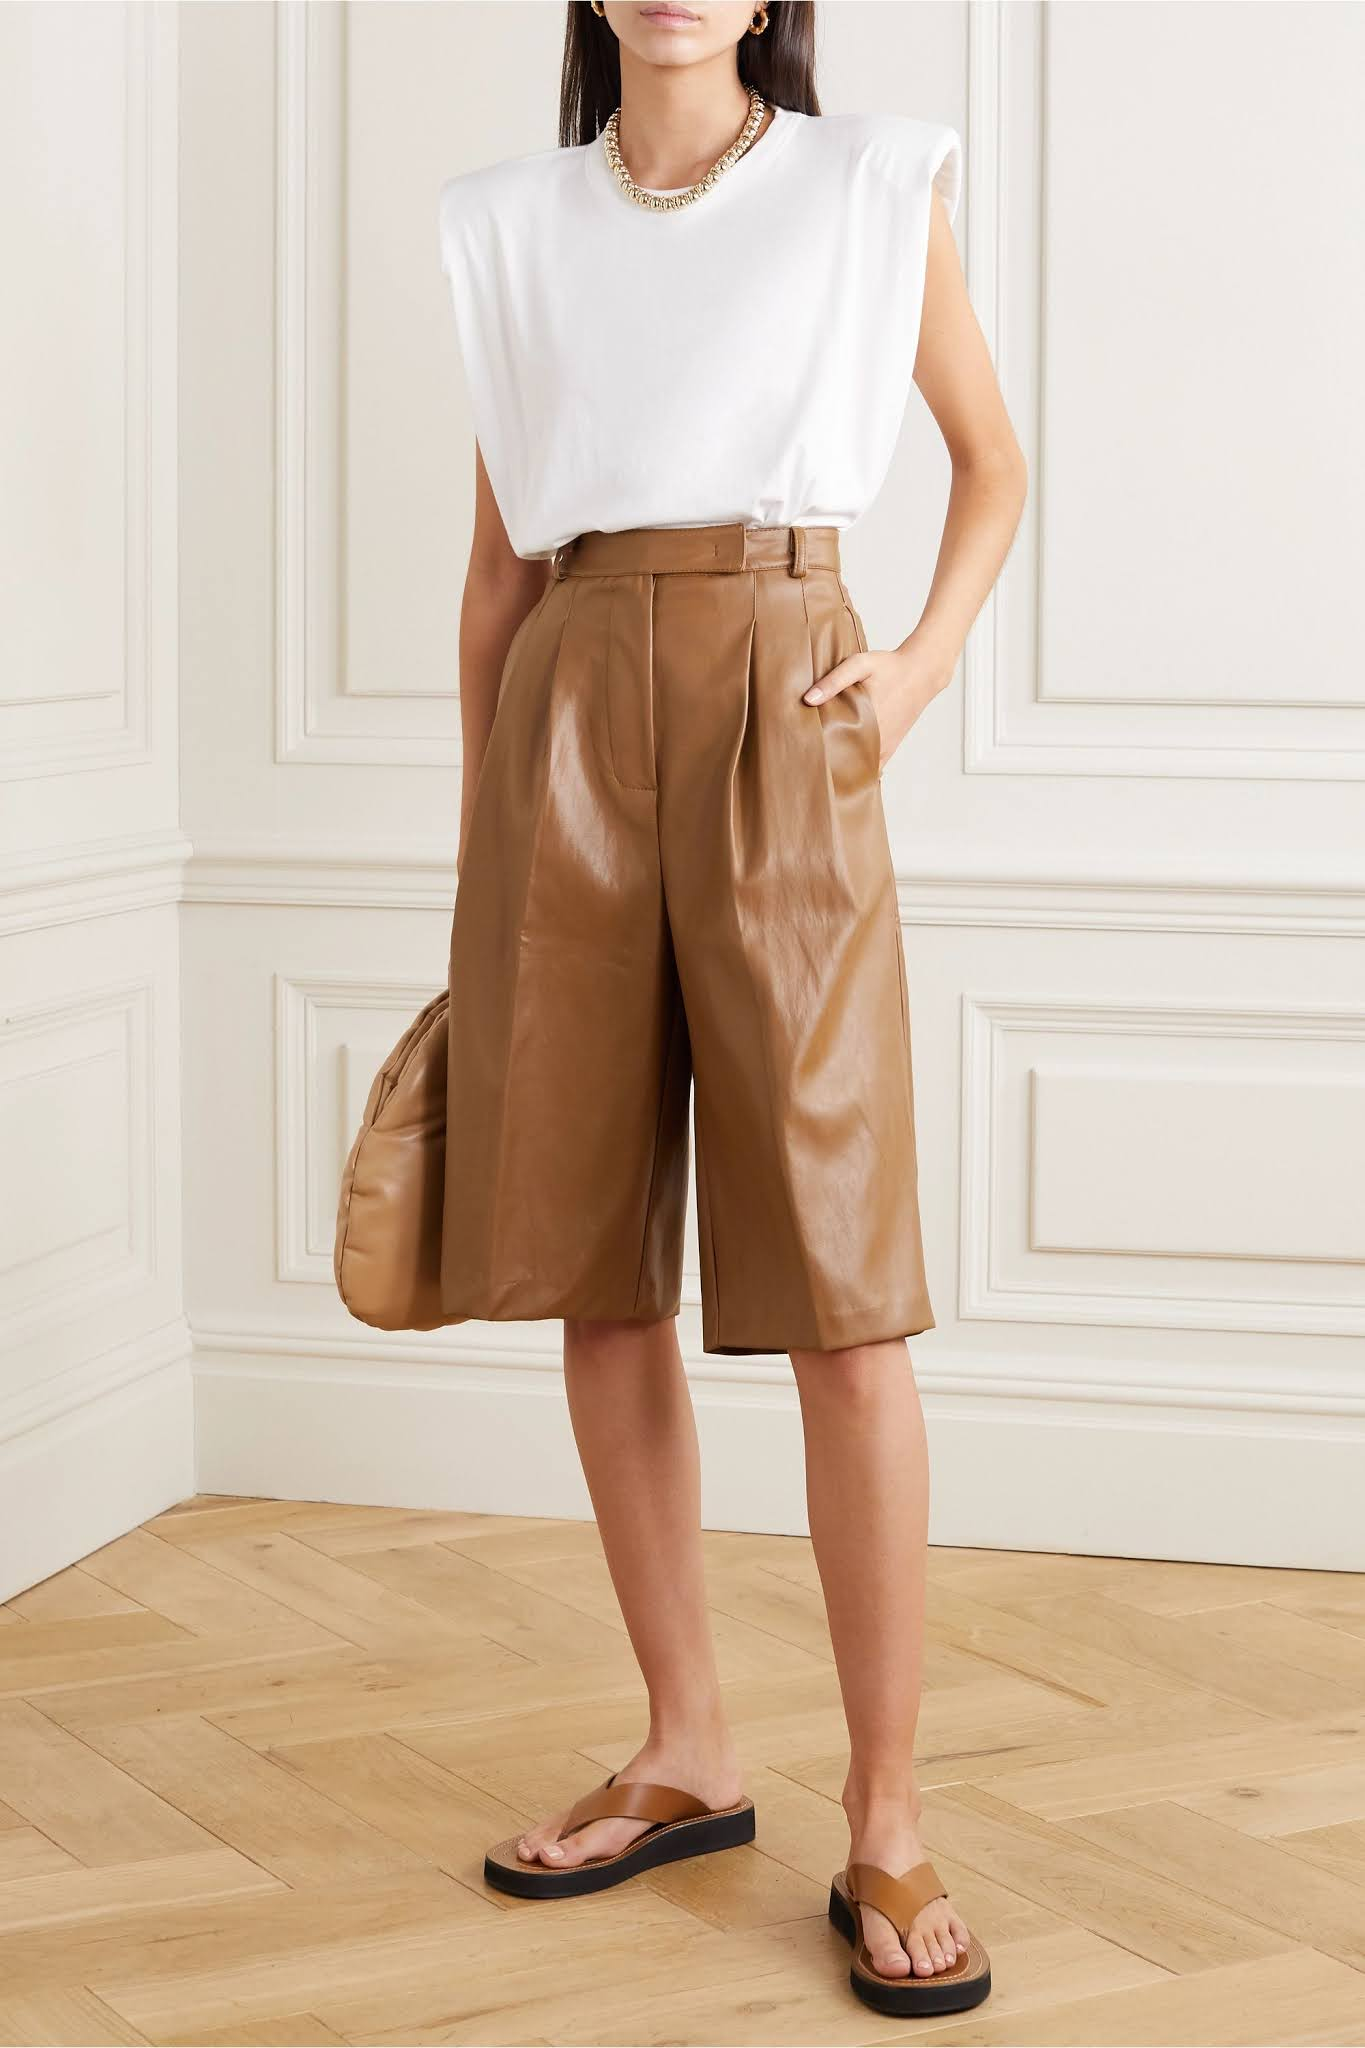 Leather Shorts Spring Outfit Idea